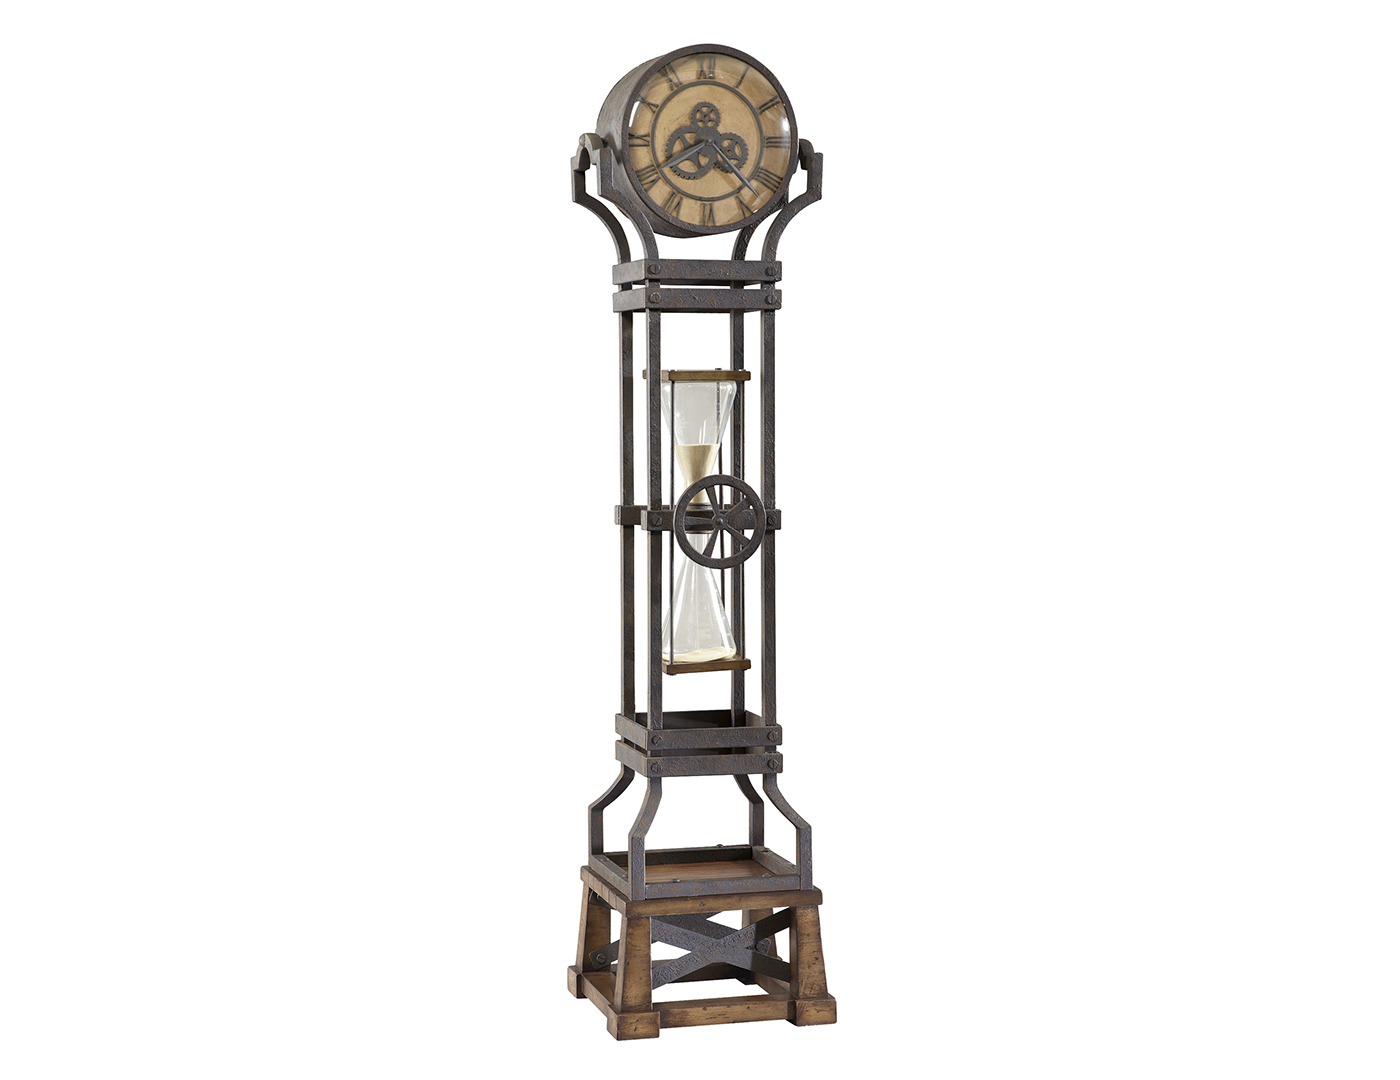 Howard Miller Aged Iron Hourglass Floor Clock